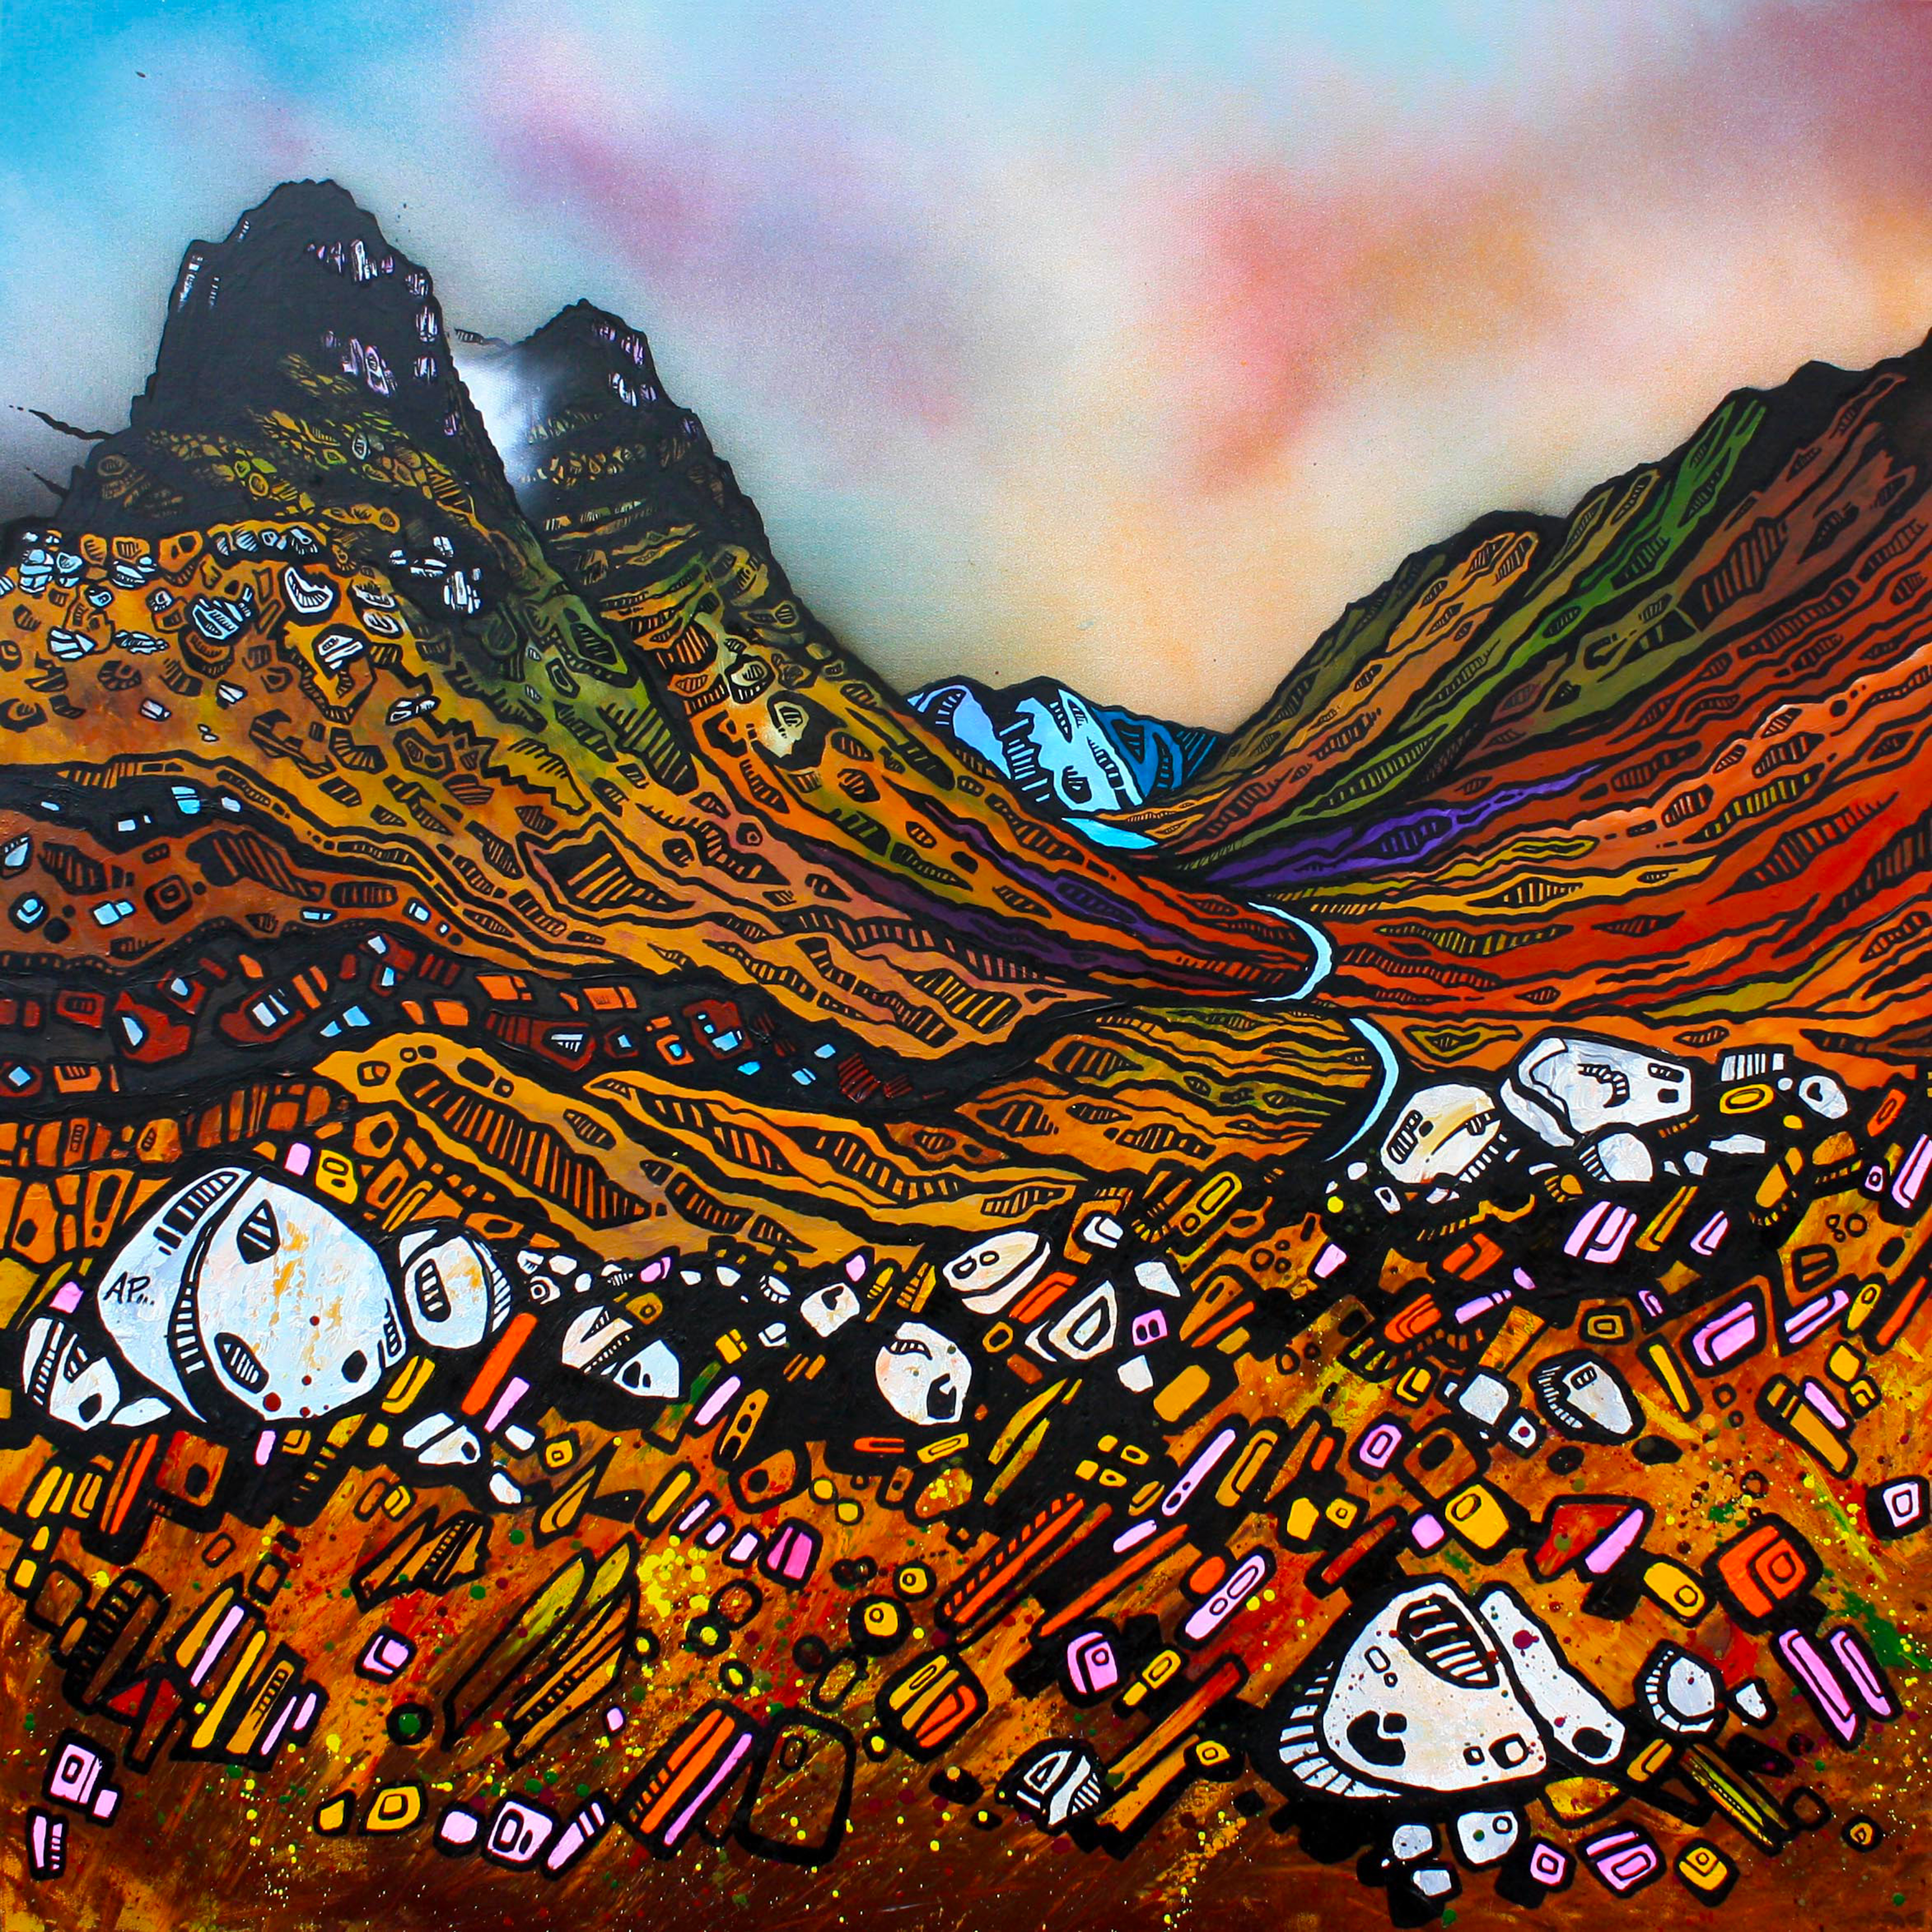 Glencoe & The three Sisters, painting & prints by Scottish artist A Peutherer. Acrylic, oil paint & spray paint on box canvas, available framed or unframed or as a print. original Scottish landscape painting by Glasgow artist A Peutherer. Original mixed media painting in acrylic paint, spray paint, oil paint and acrylic ink on box canvas.